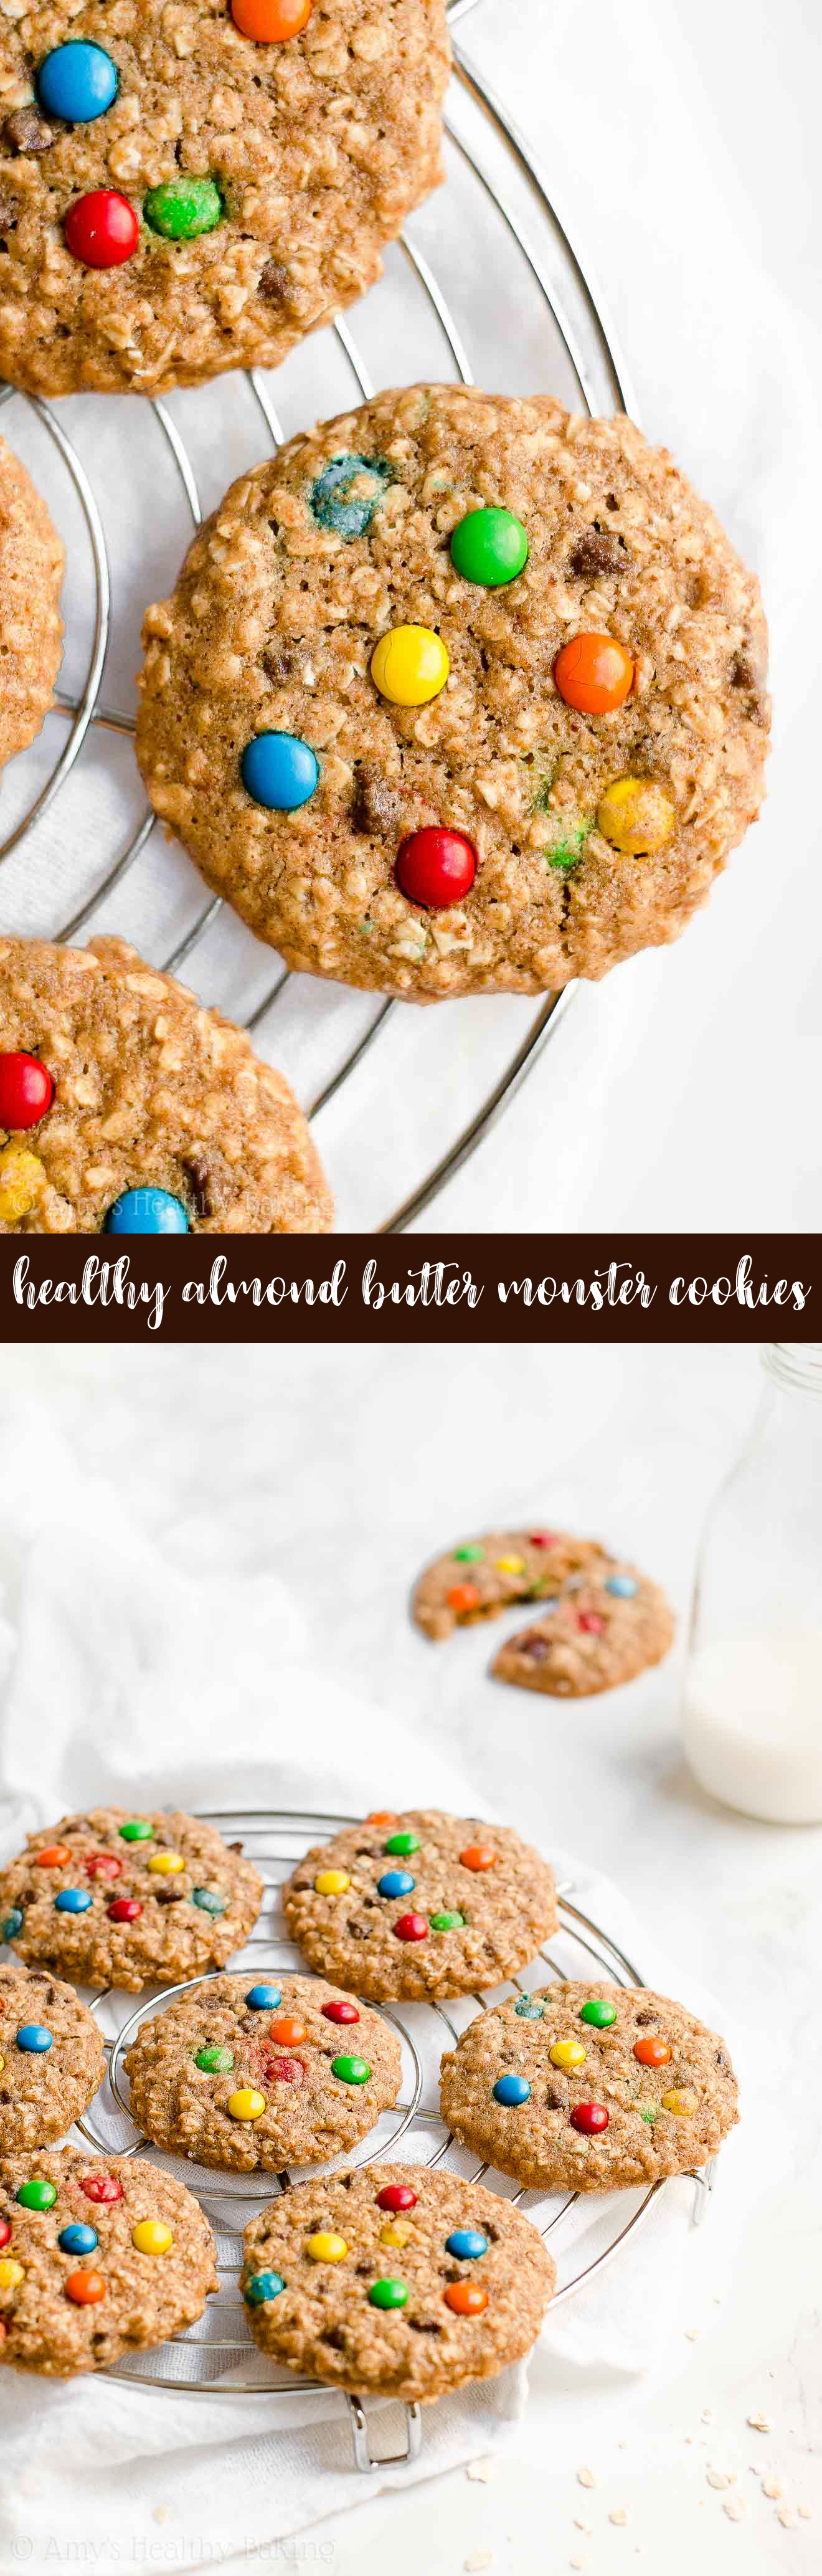 Best Ever Healthy Almond Butter Monster Cookies